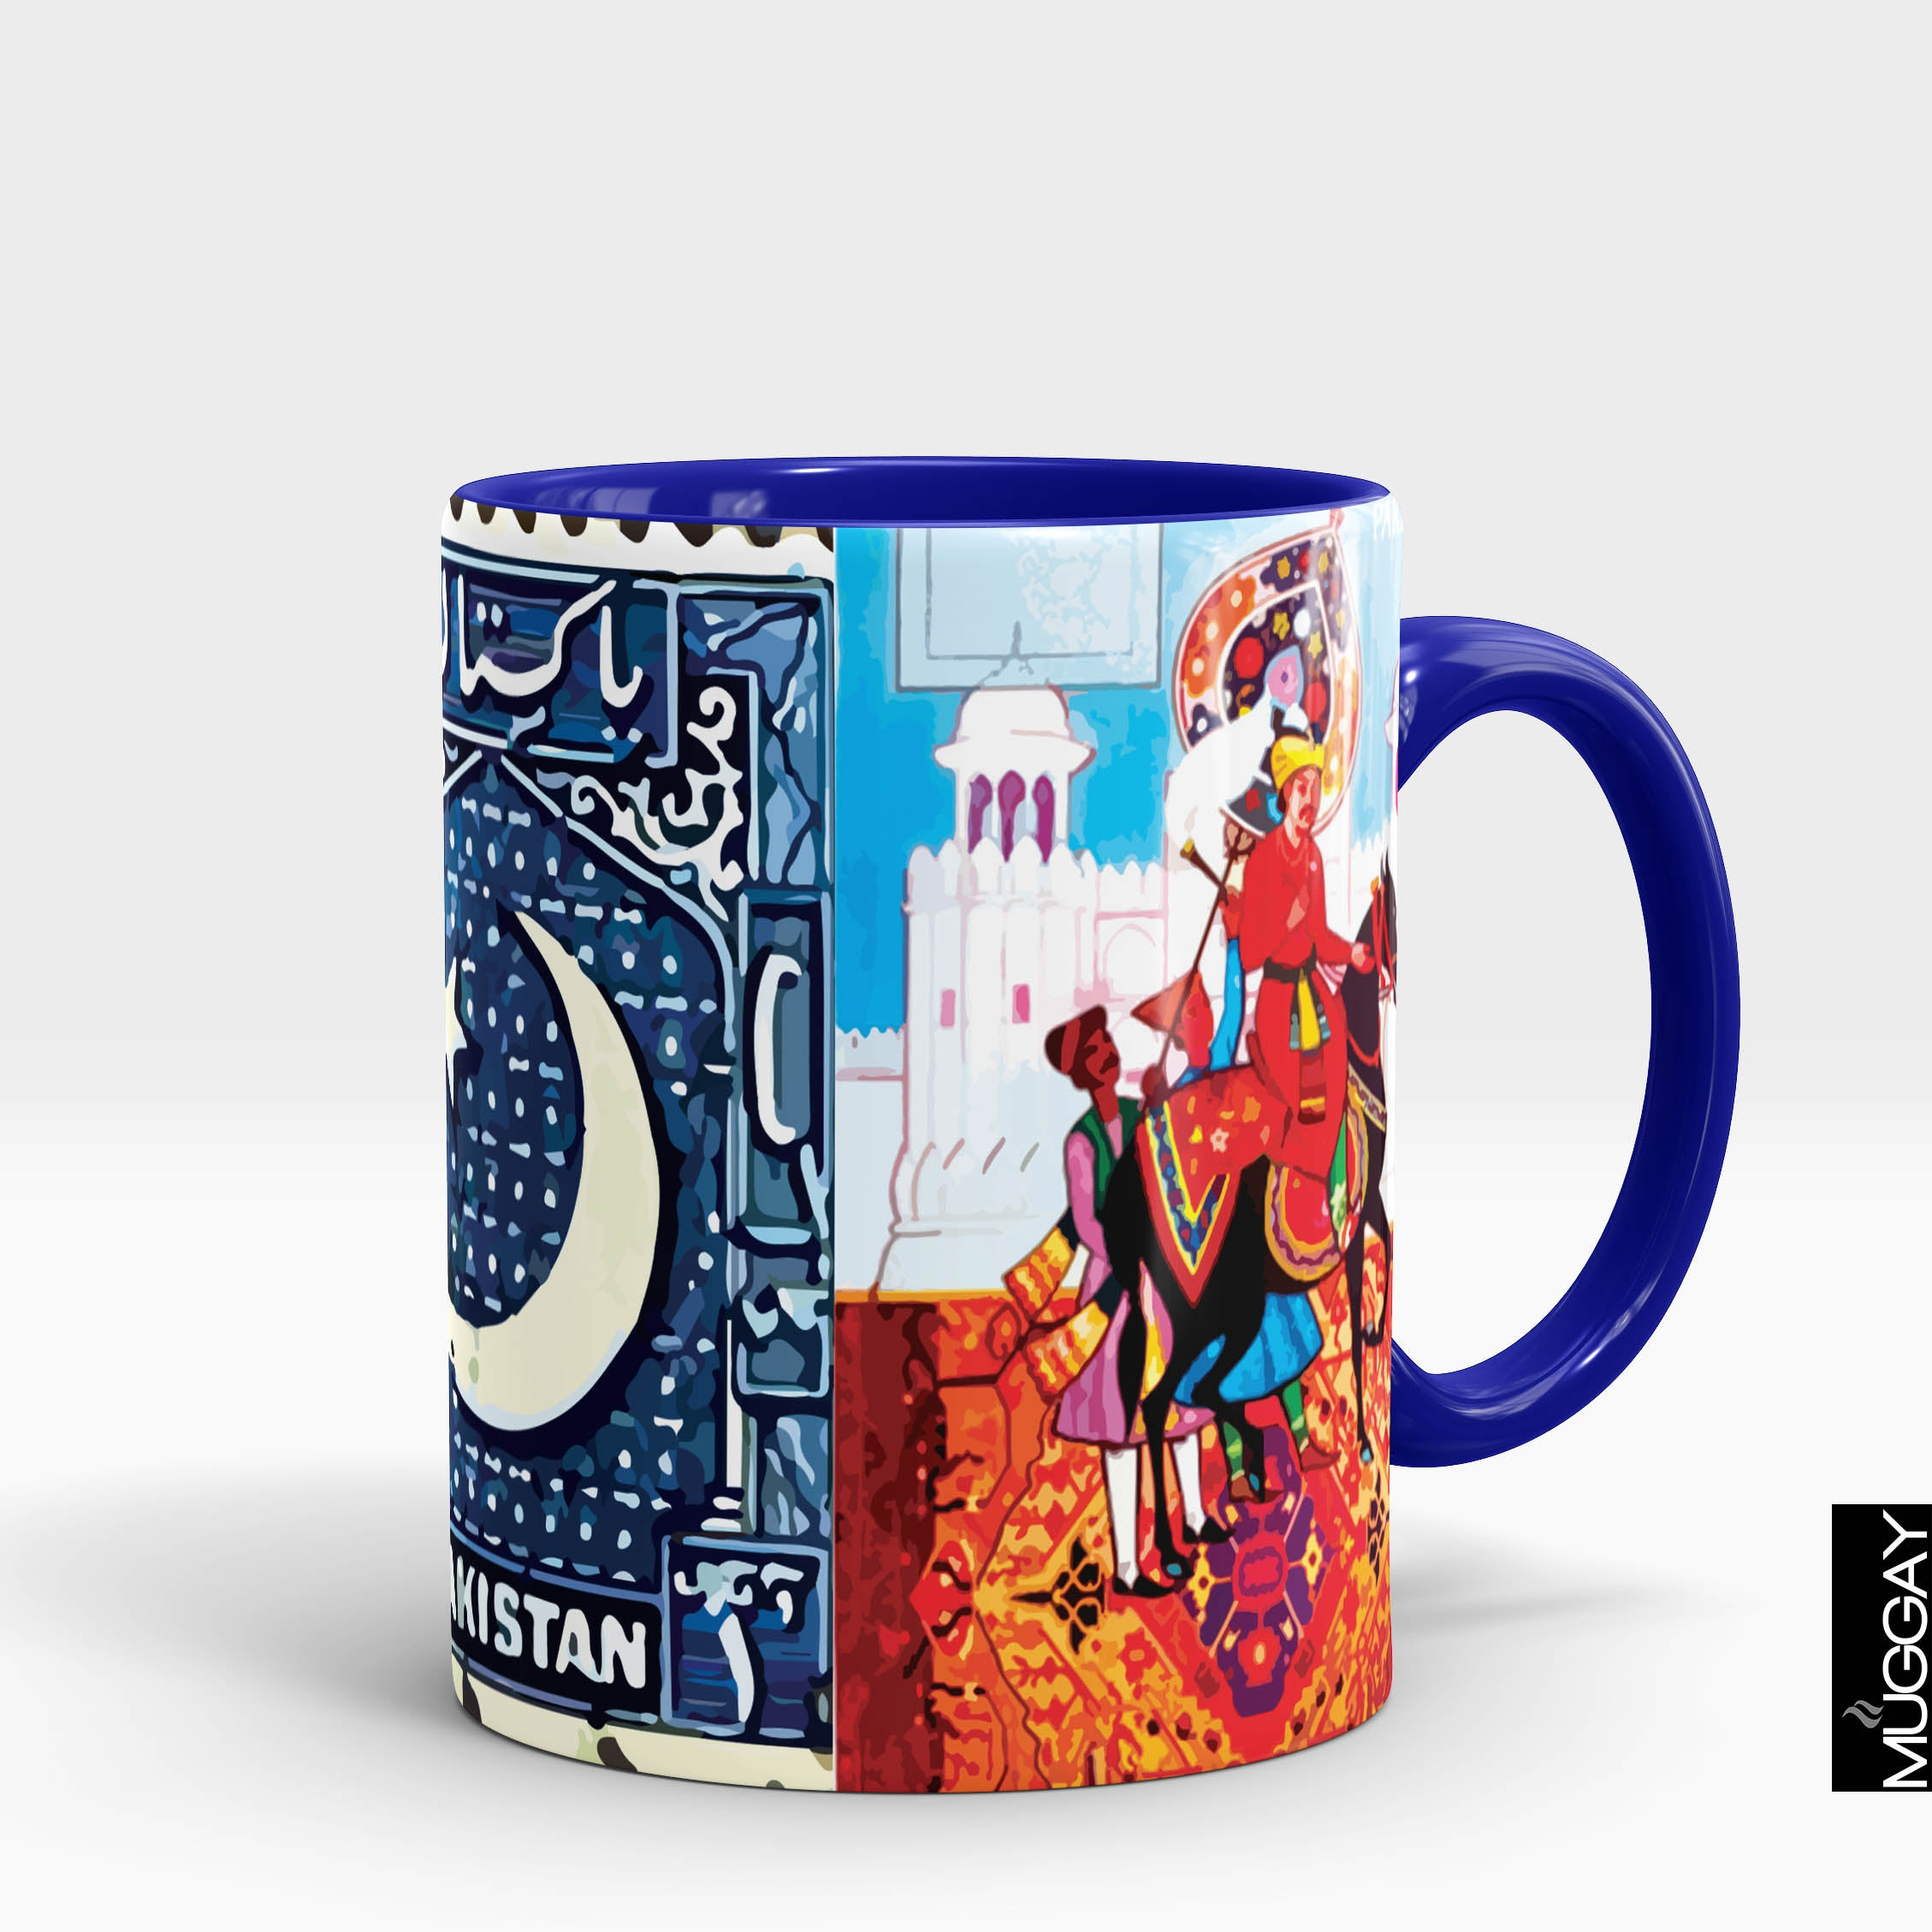 Truck Art Mugs - Pakisn Special